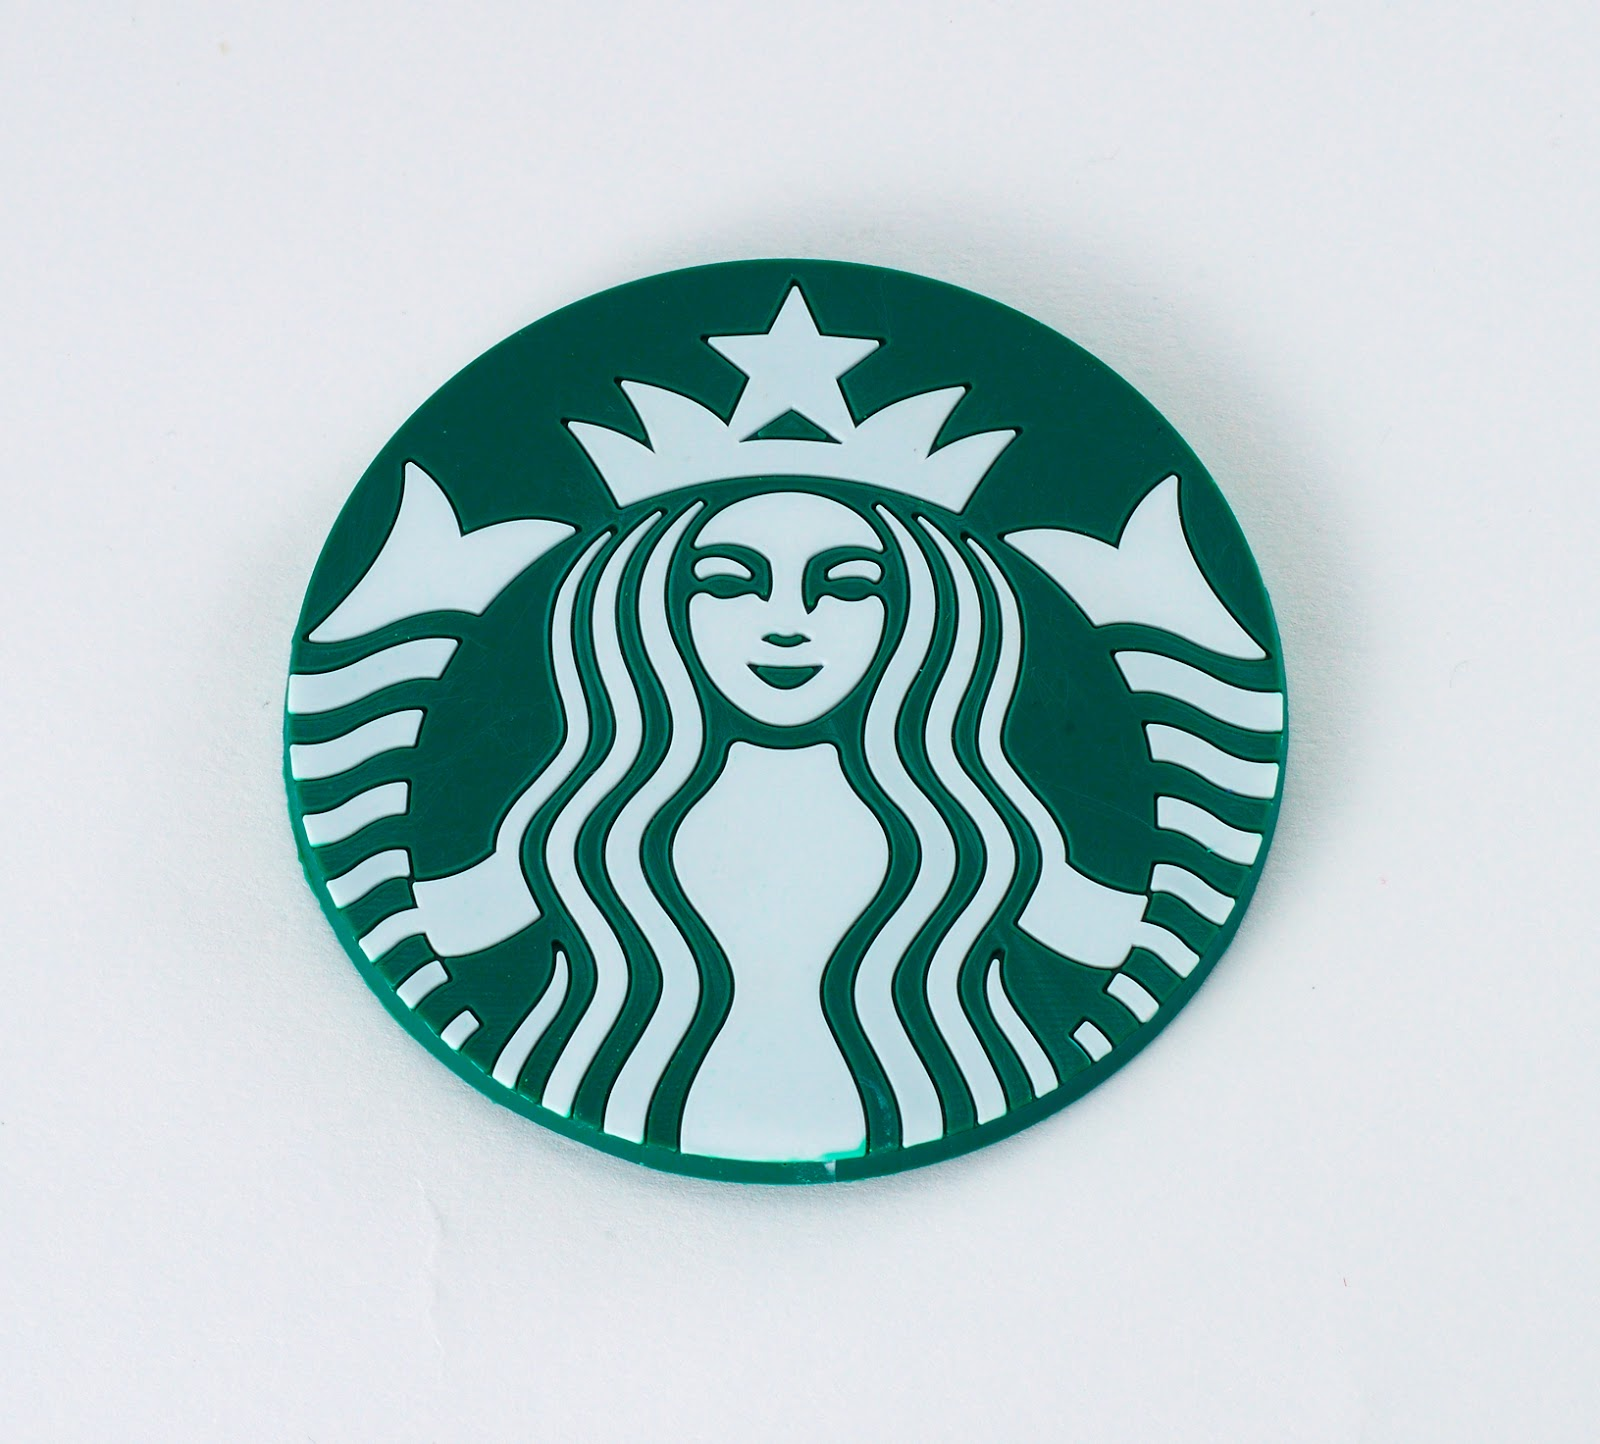 starbucks corp Since 1971, starbucks coffee company has been committed to ethically sourcing and roasting the highest-quality arabica coffee in the world today, with stores around the globe, the company is the premier roaster and retailer of specialty coffee in the world.